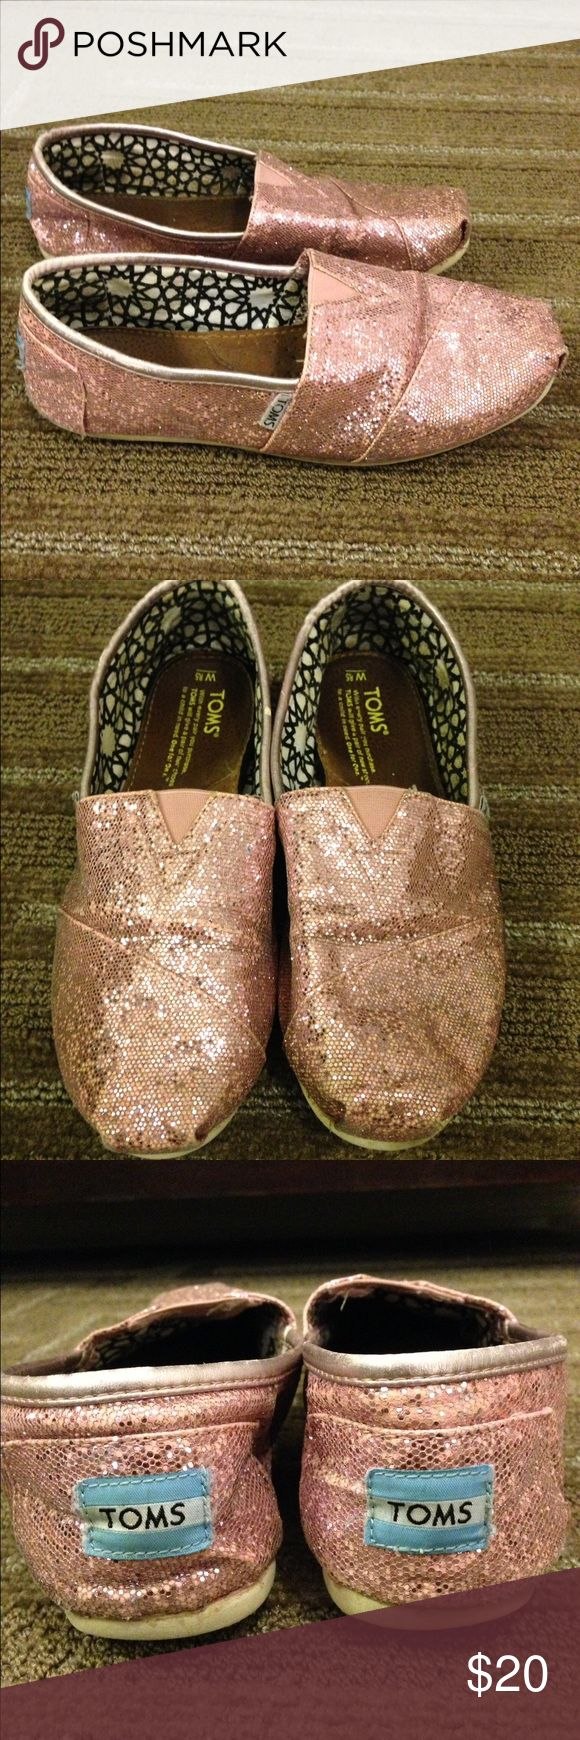 🌴NEW LISTING🌴 Glitter Toms Shoes Pink. Sole is soiled. Size 8.5. TOMS Shoes Flats & Loafers